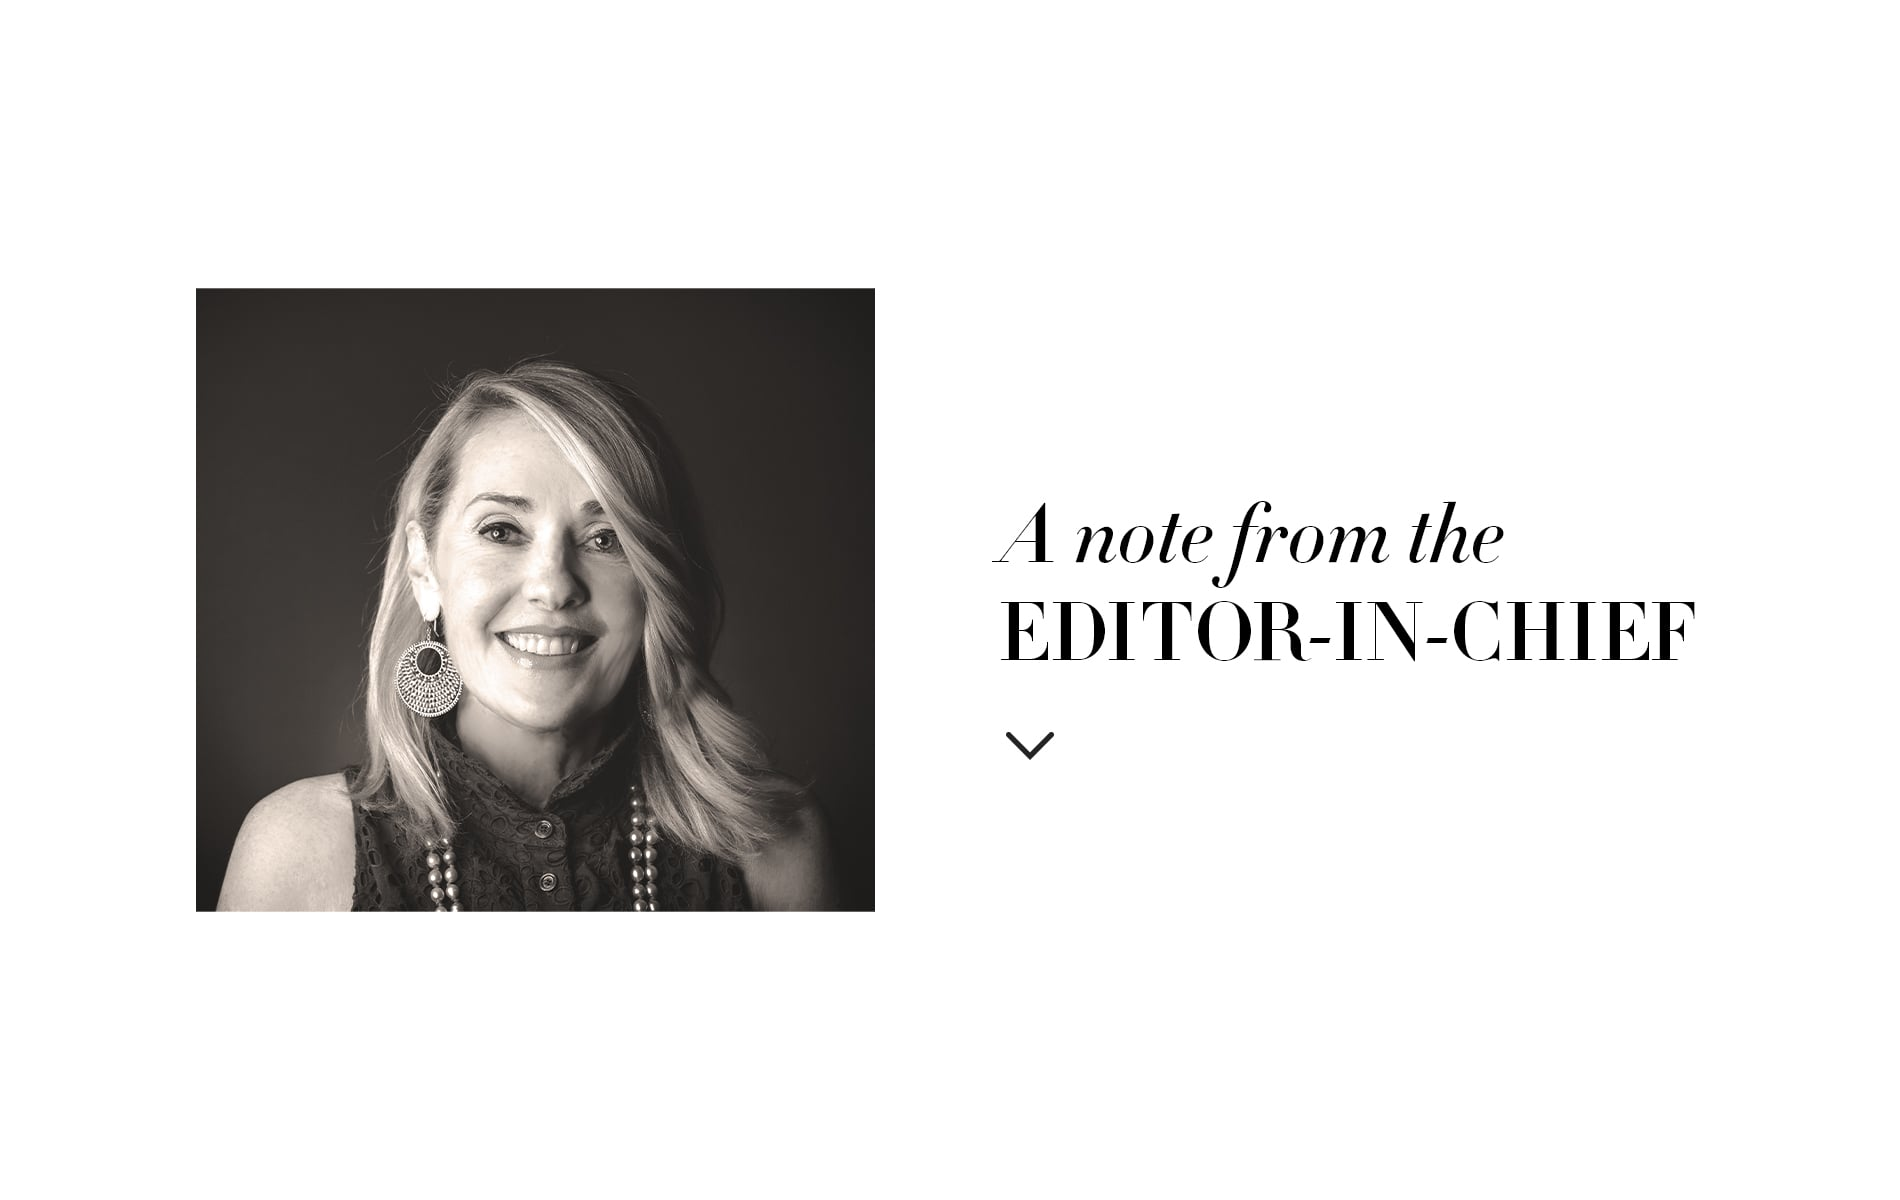 Lisa Burwell, Editor-in-Chief, editors note, VIE Magazine August 2019 Architecture & Design Issue